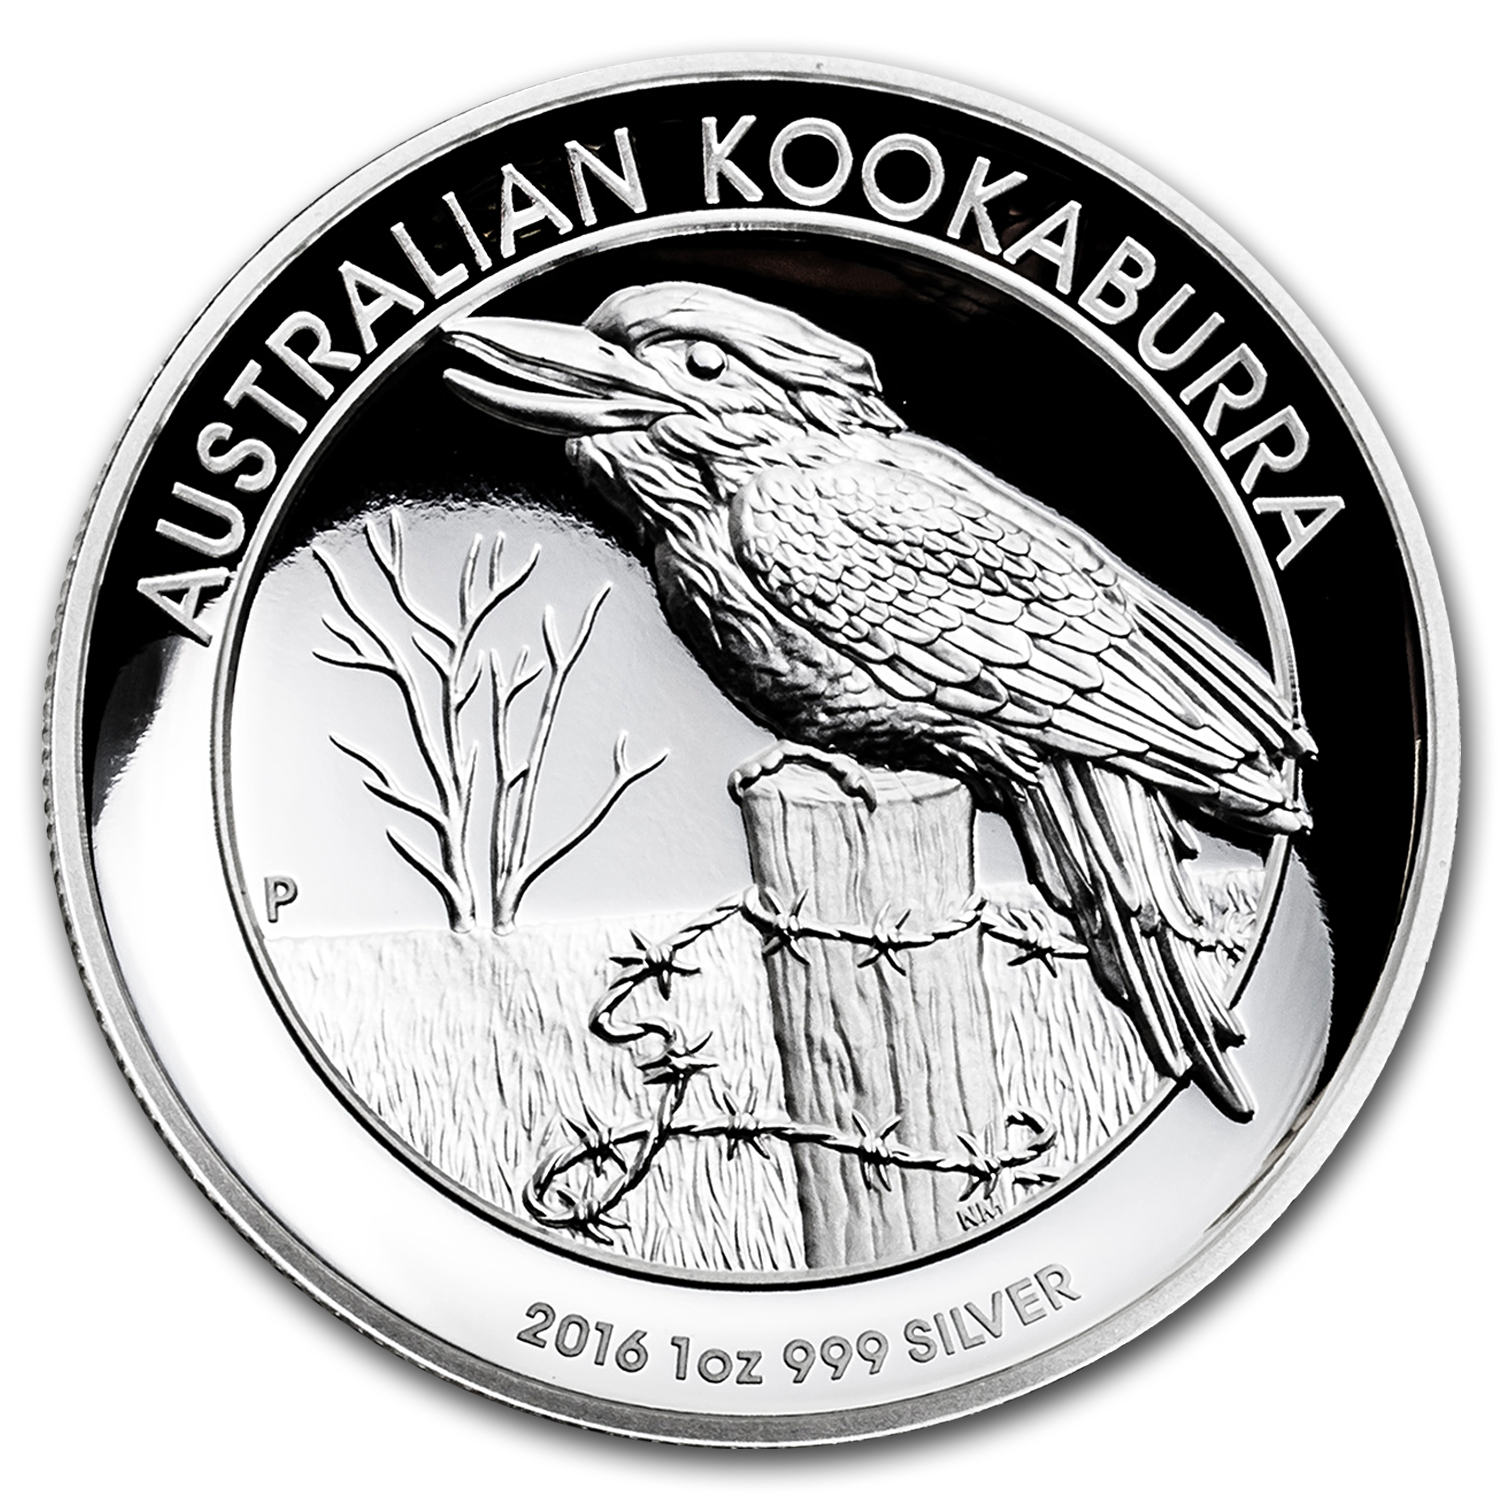 2016 Australia 1 oz Silver Kookaburra Proof (High Relief)